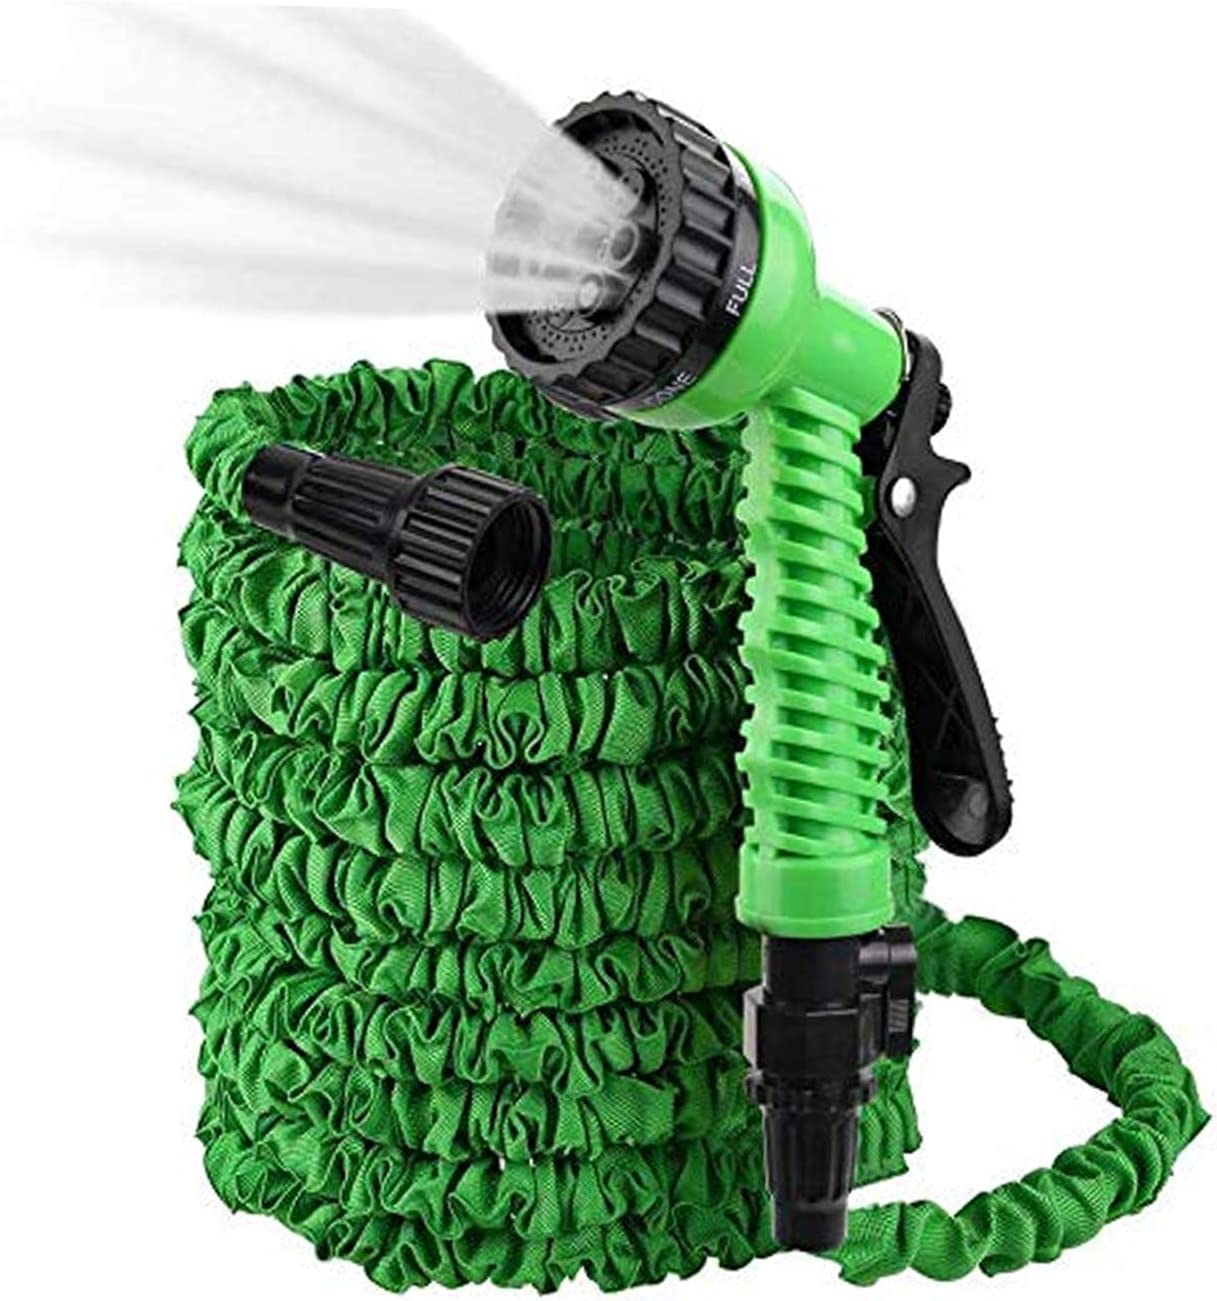 Micnaron Flexible and Expandable Garden Hose - Strongest Triple Latex Core Free 7 Function Spray Nozzle, Easy Storage Kink Free Water Hose (25ft, Green)